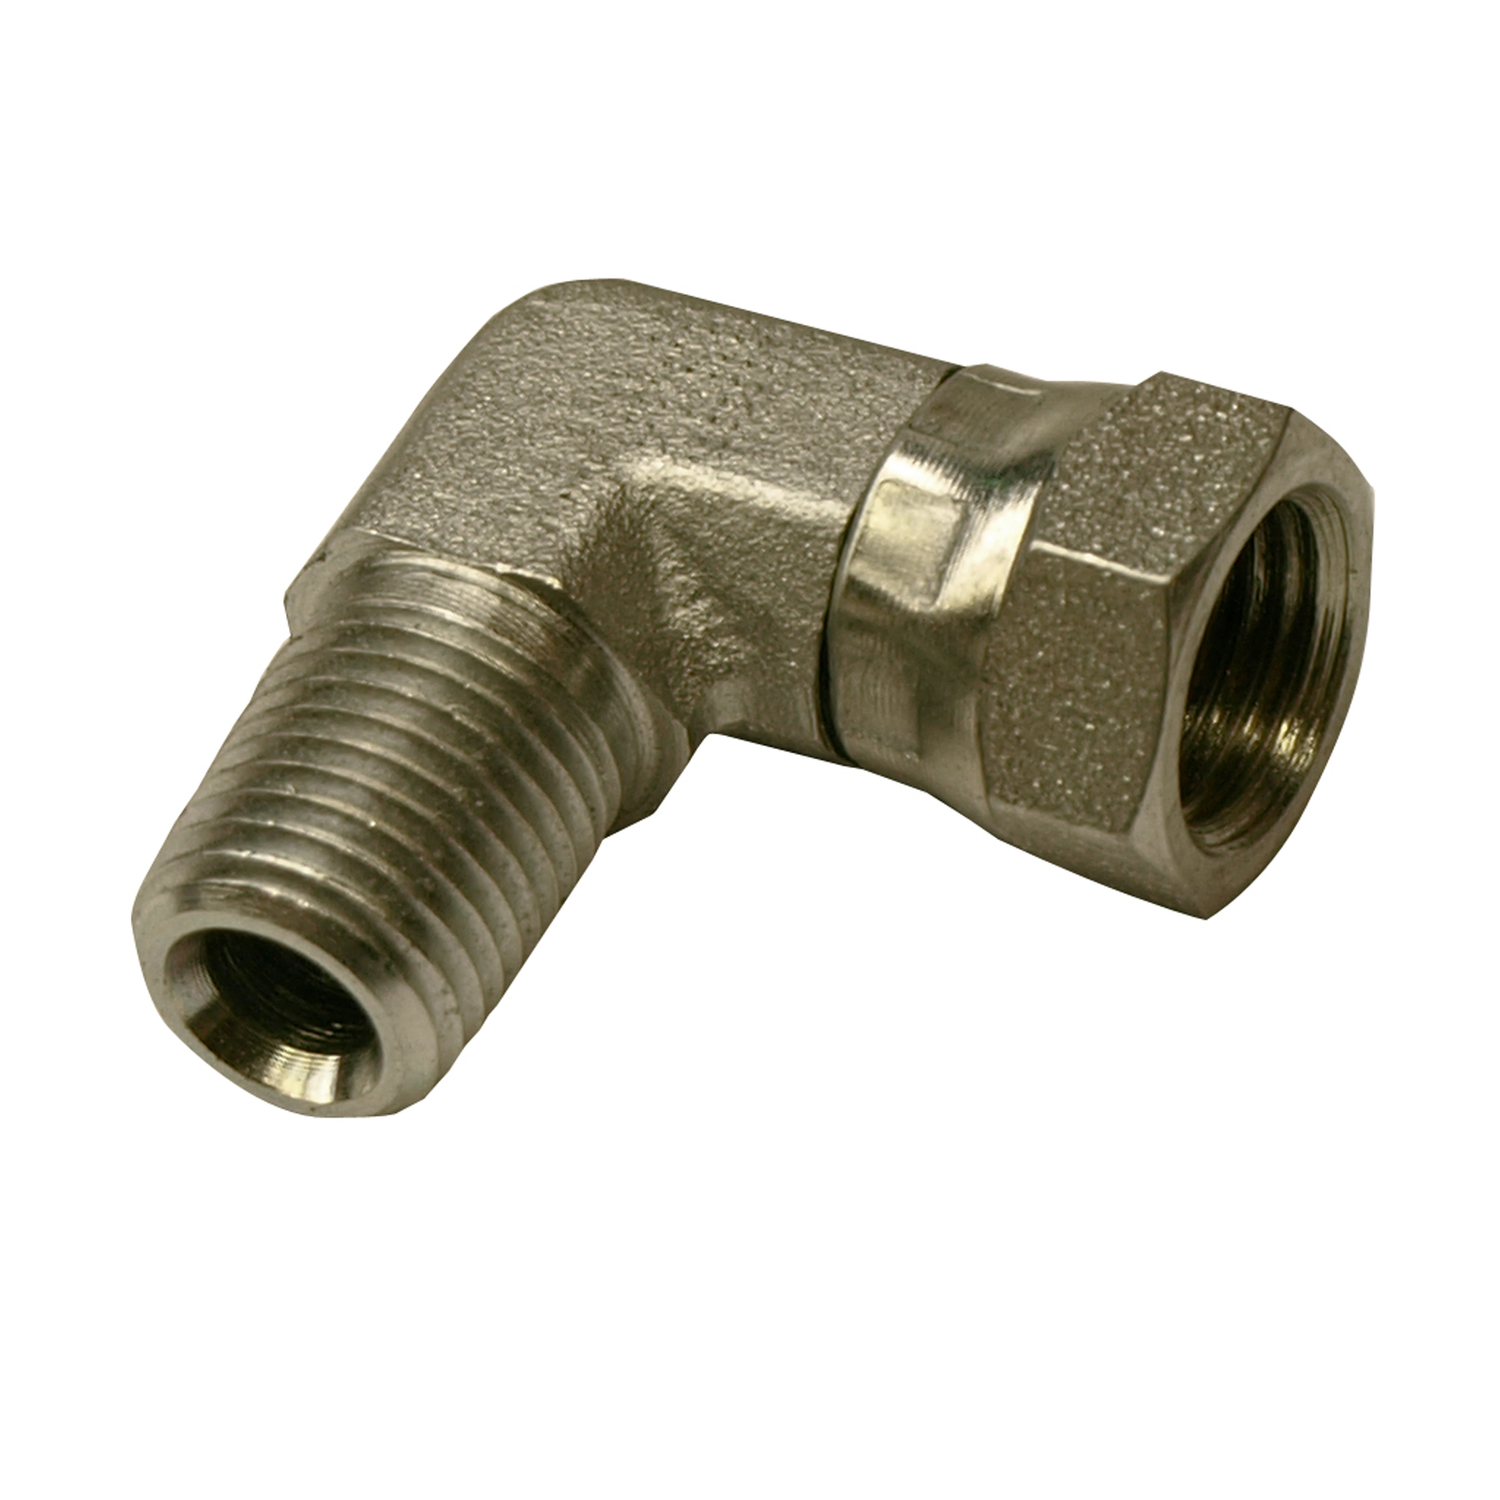 Universal  Steel  Hydraulic Adapter  1/2 in. Dia. x 3/8 in. Dia. 1